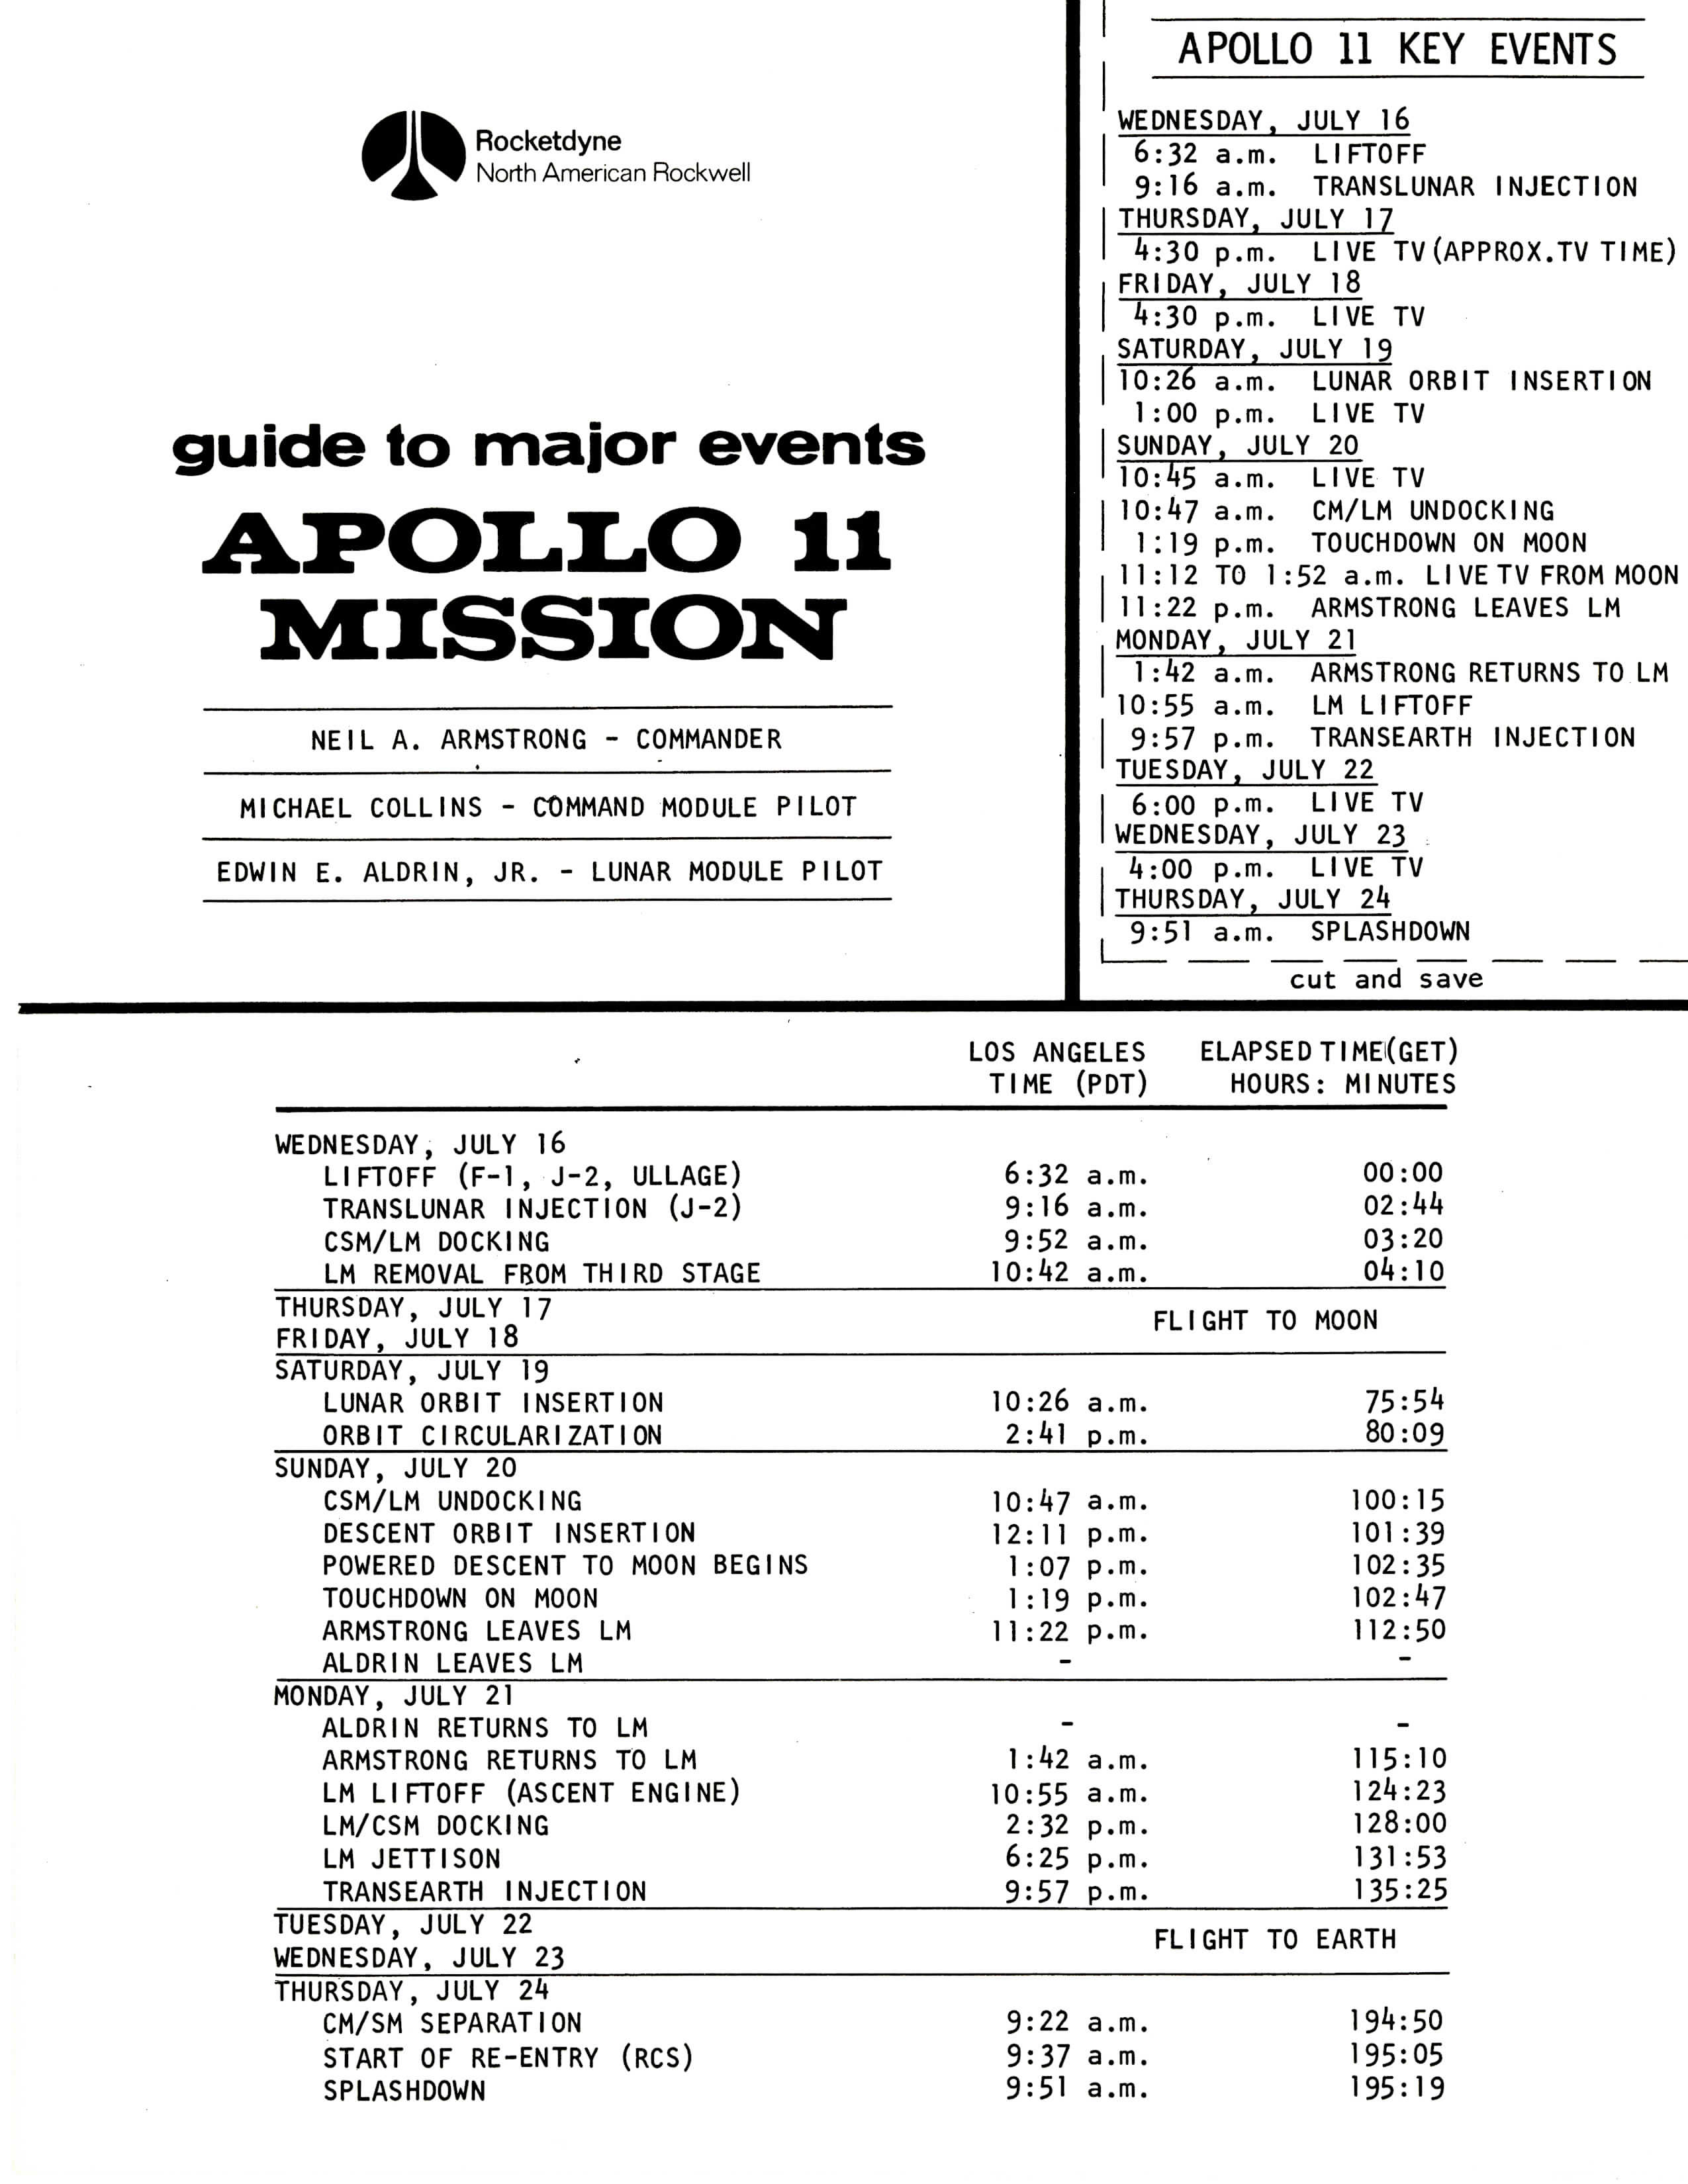 Apollo 11 Key Events – In 1969, the company released a schedule of when the different events would occur to successfully land astronauts and safely return them home.